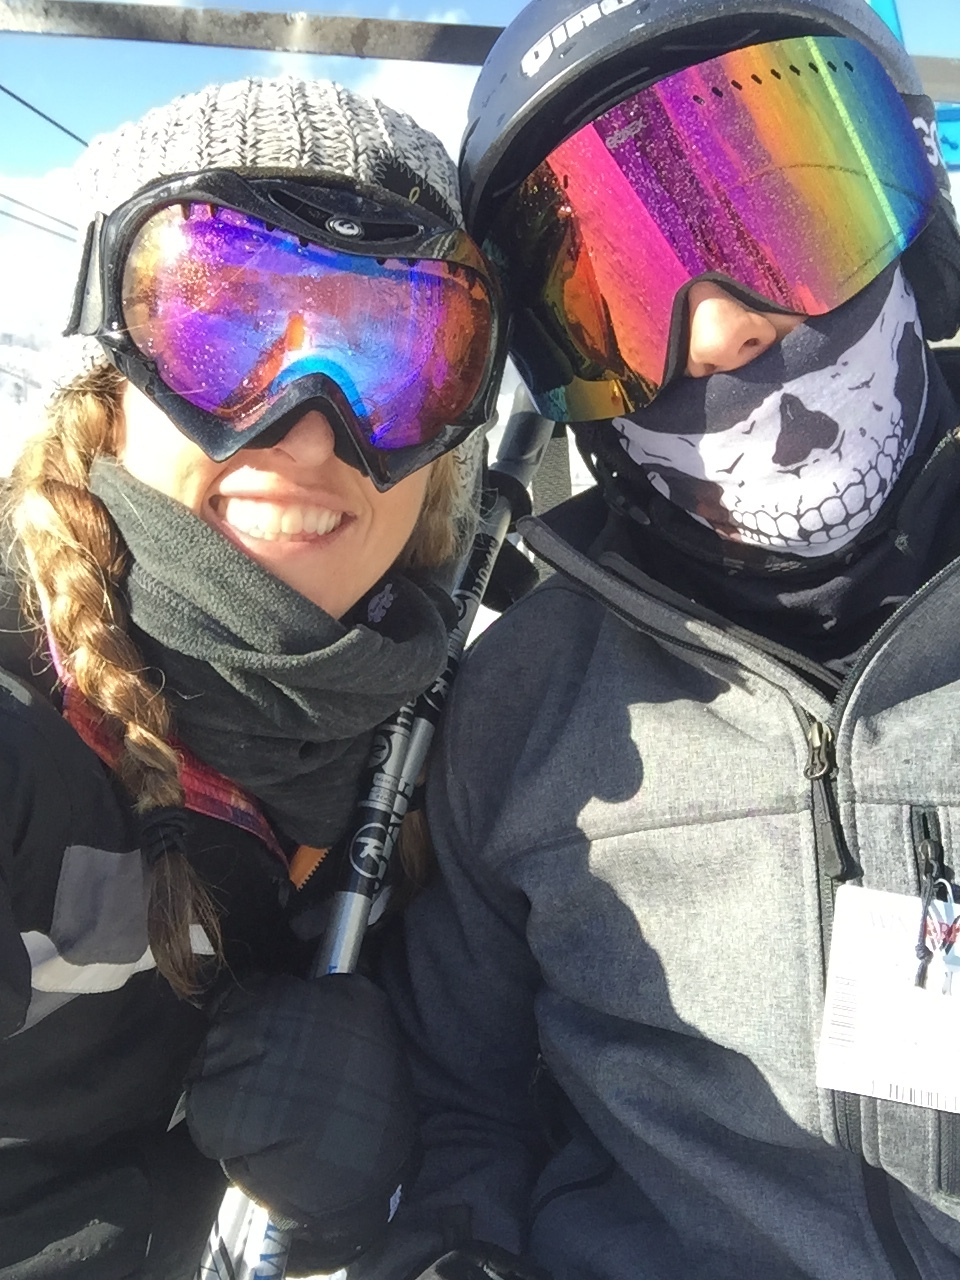 One thing we can both do that we love is SKI!!! So much fun this weekend!